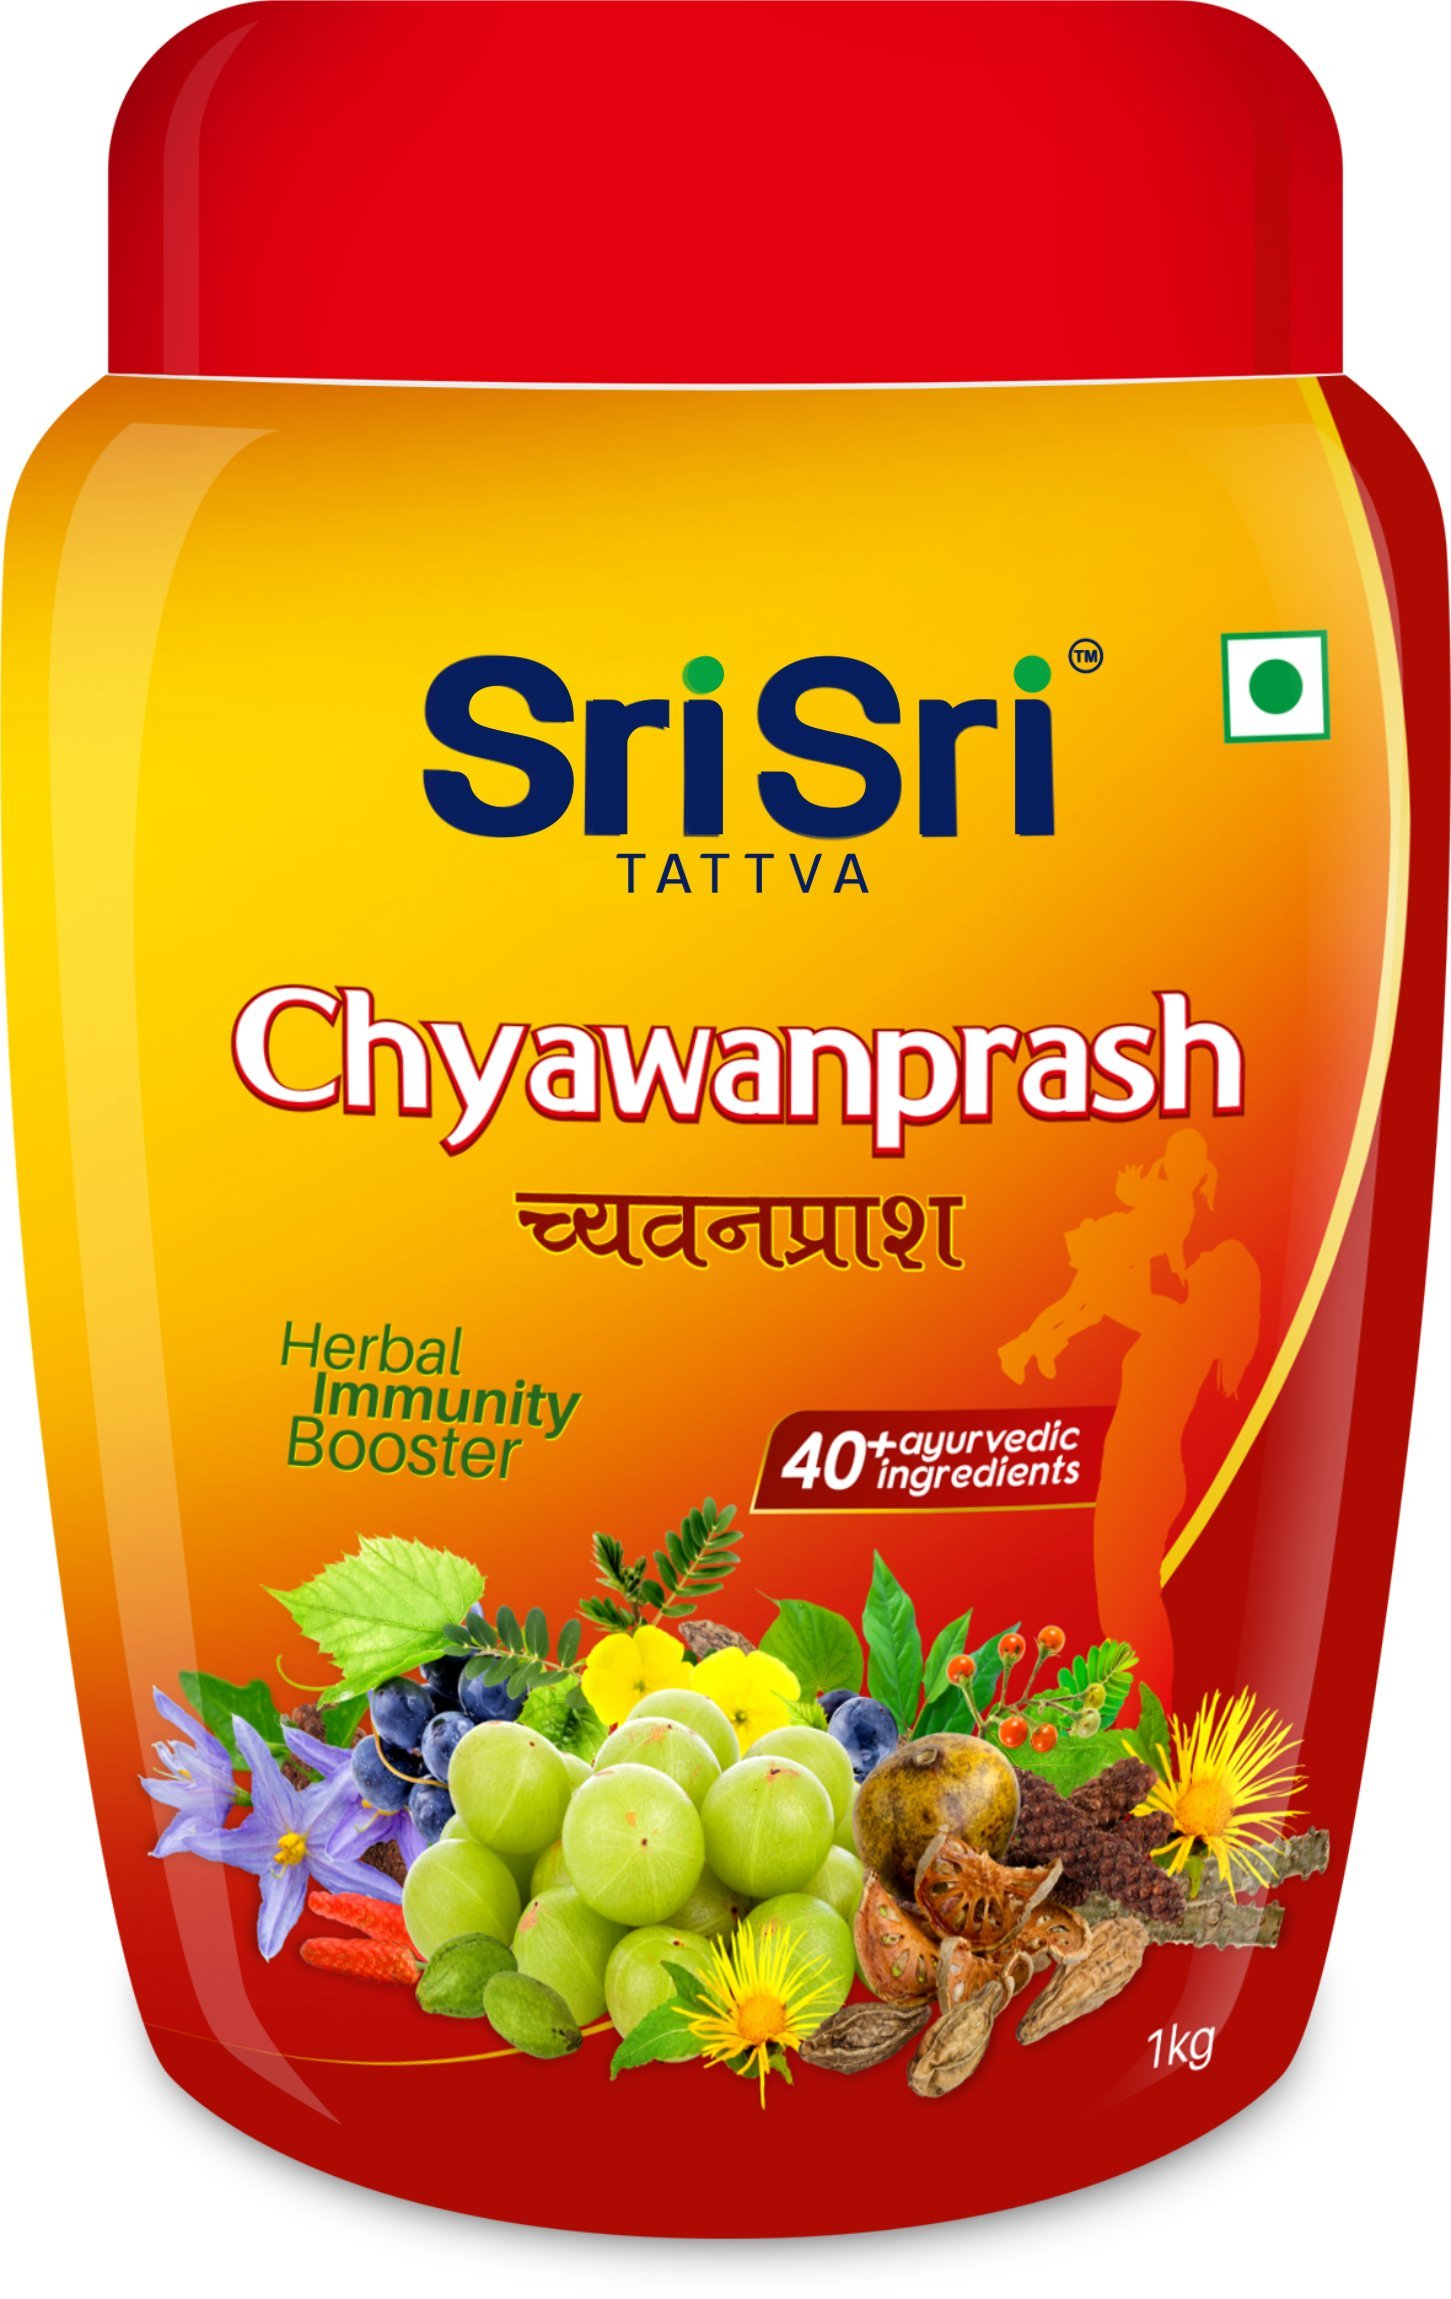 Sri Sri Tattva Chyawanprash, 1Kg (B071P58MLX) Amazon Price History, Amazon Price Tracker